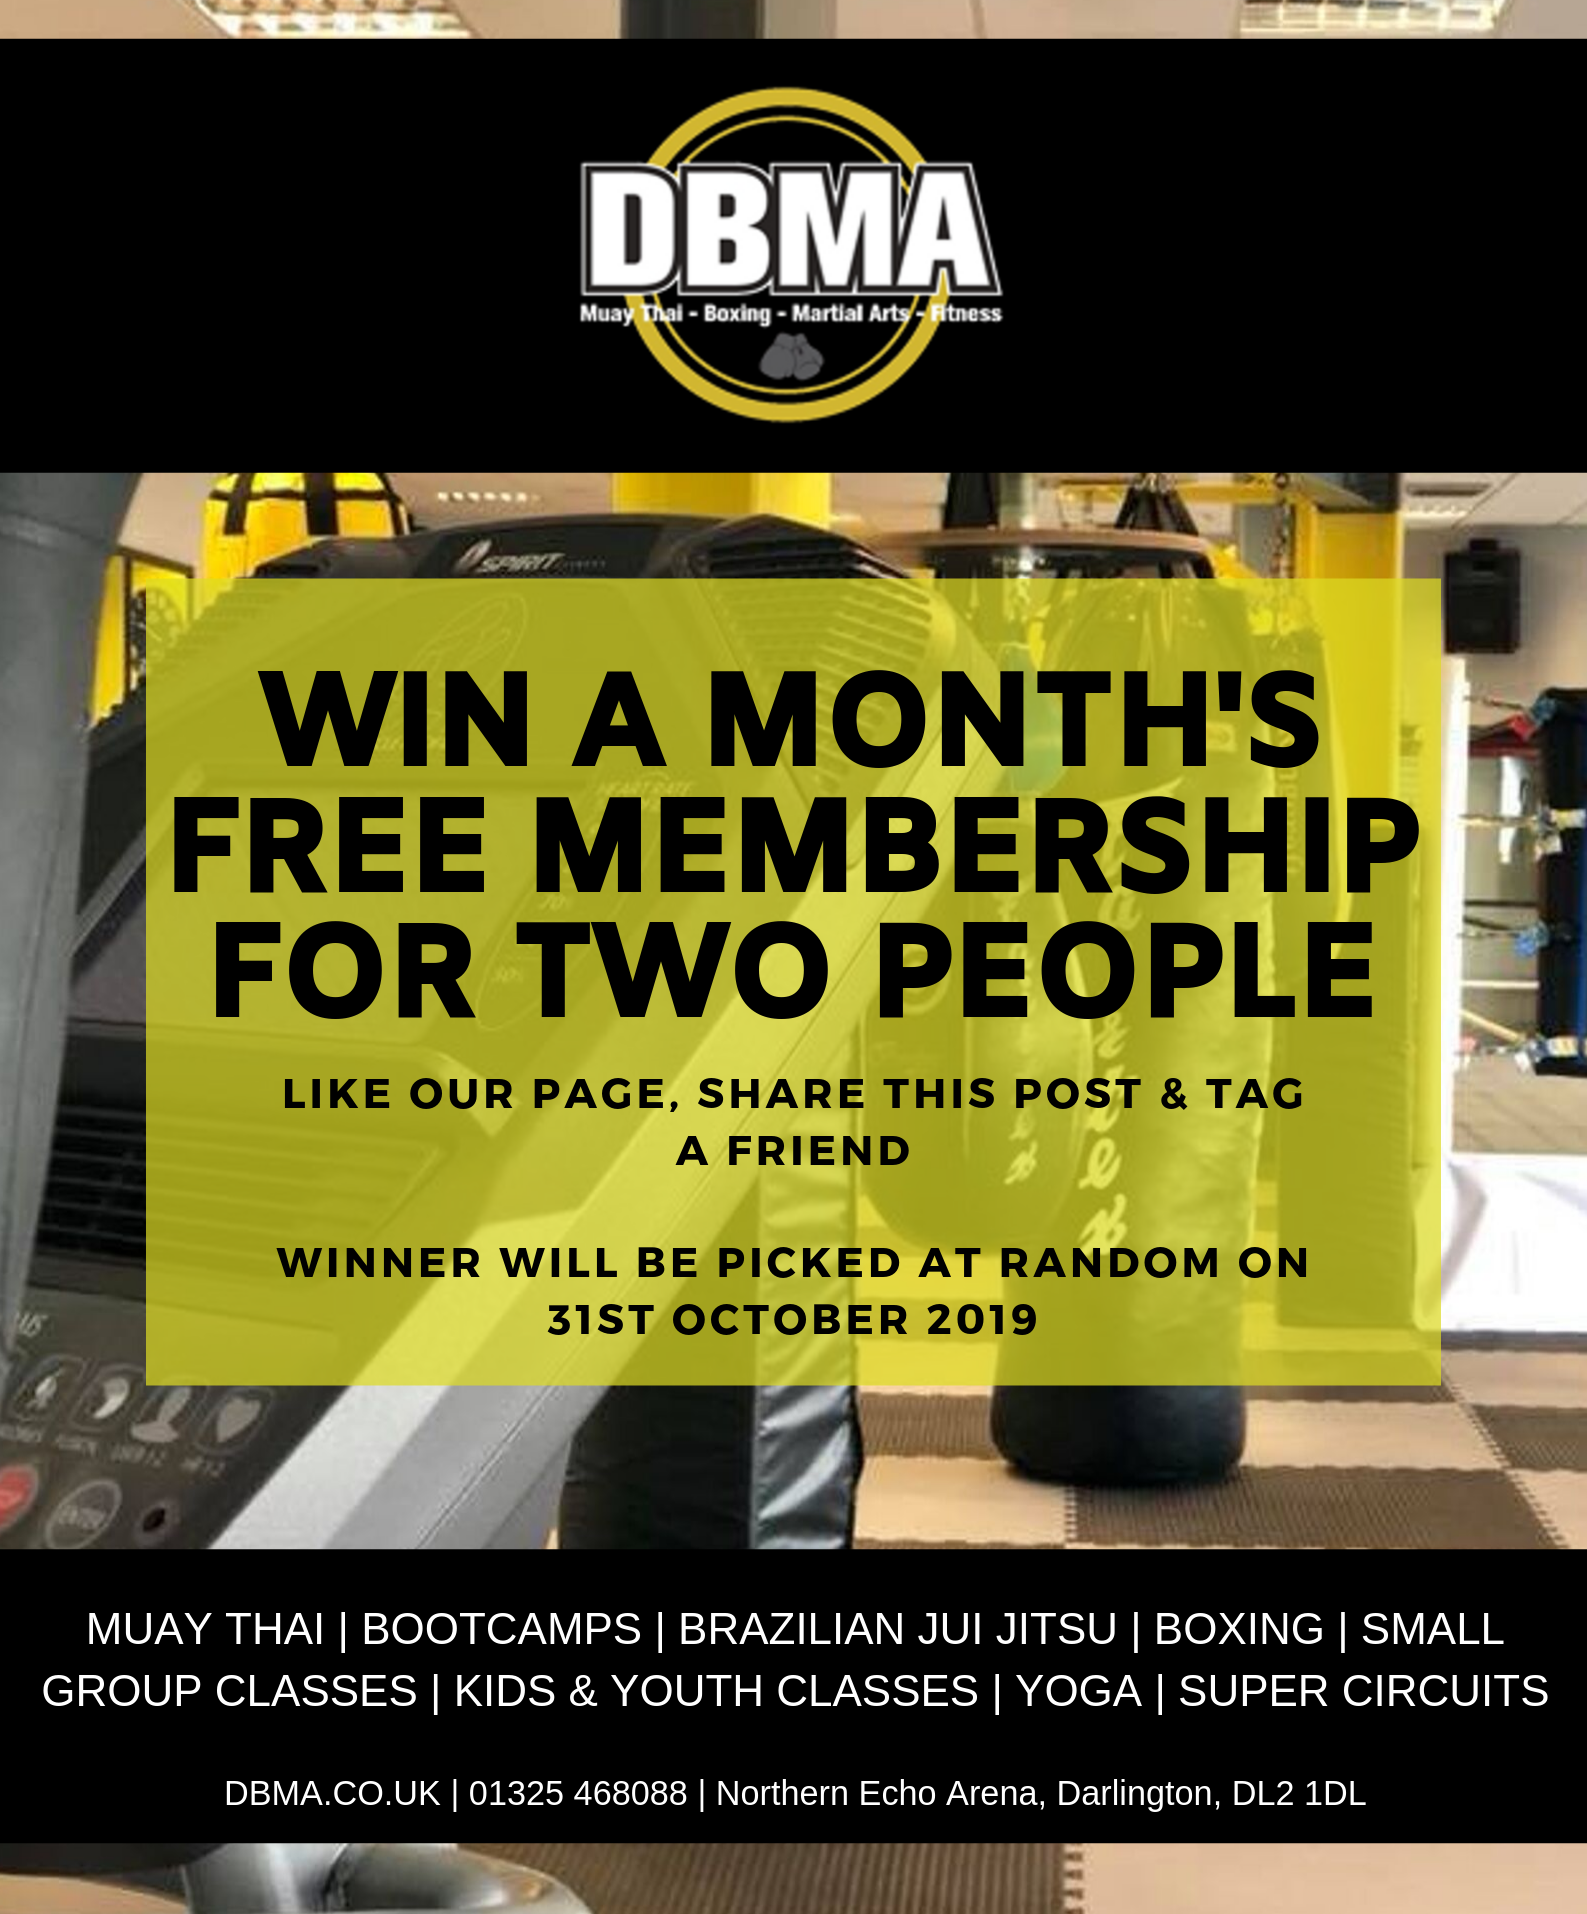 Win a month's free membership for two people